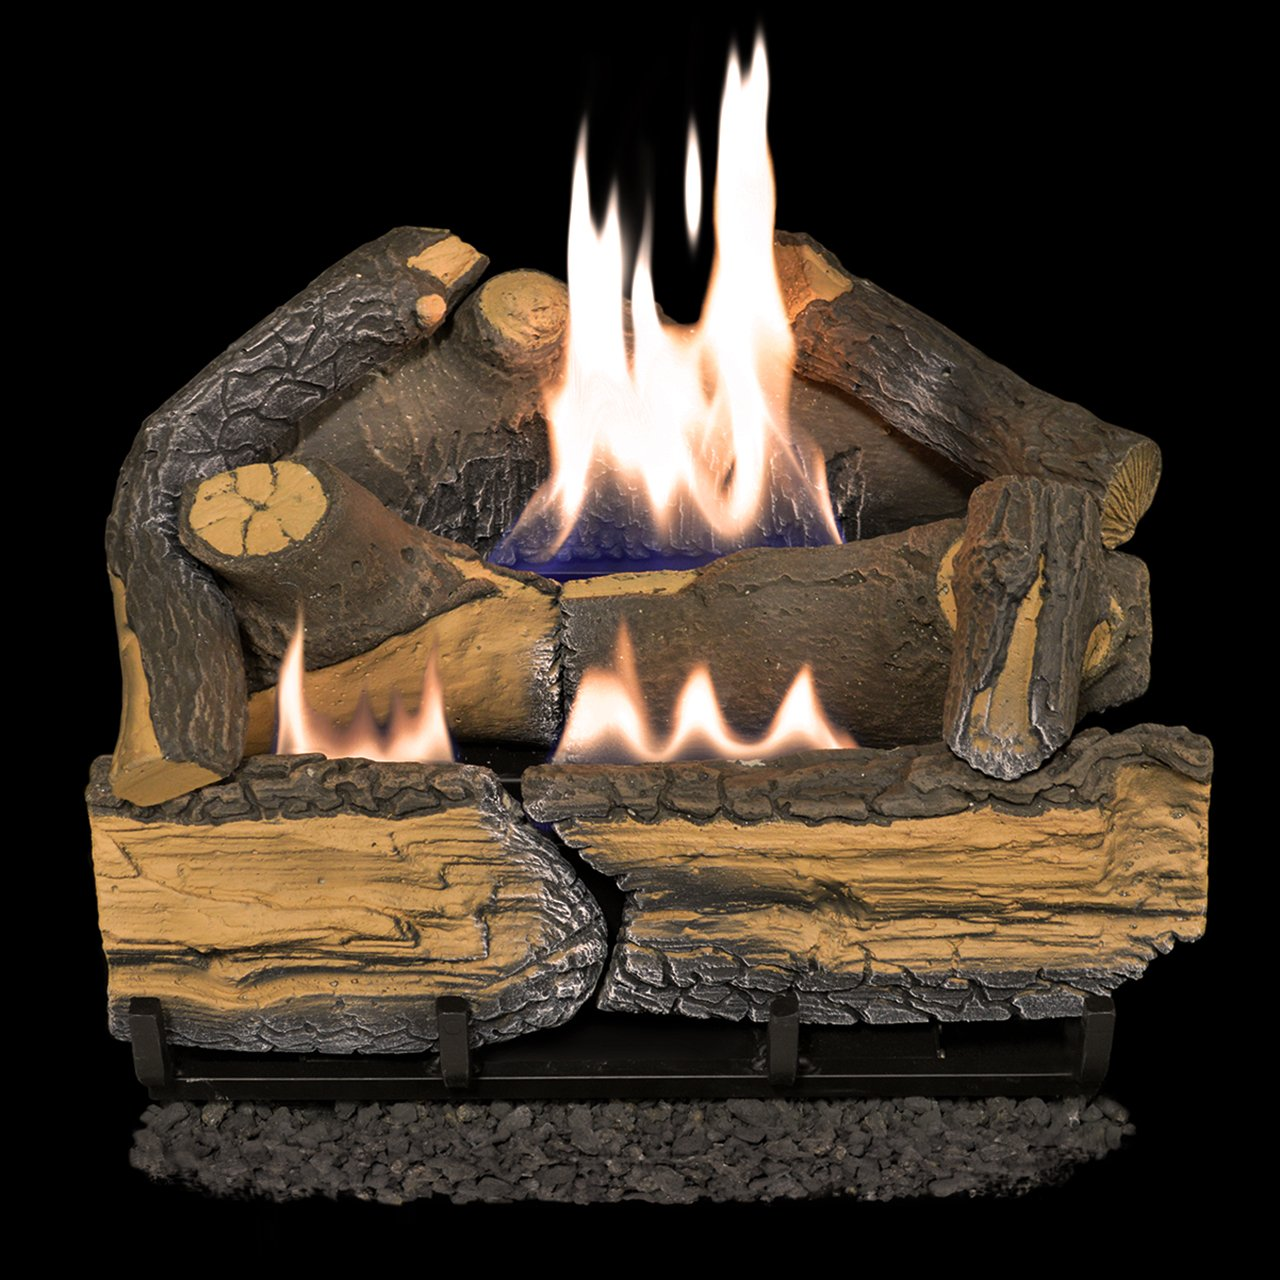 Cedar Ridge Hearth Recon 18-in 30,000-BTU Dual-Burner Vent-Free Gas Fireplace Logs with Thermostat CRHD18T